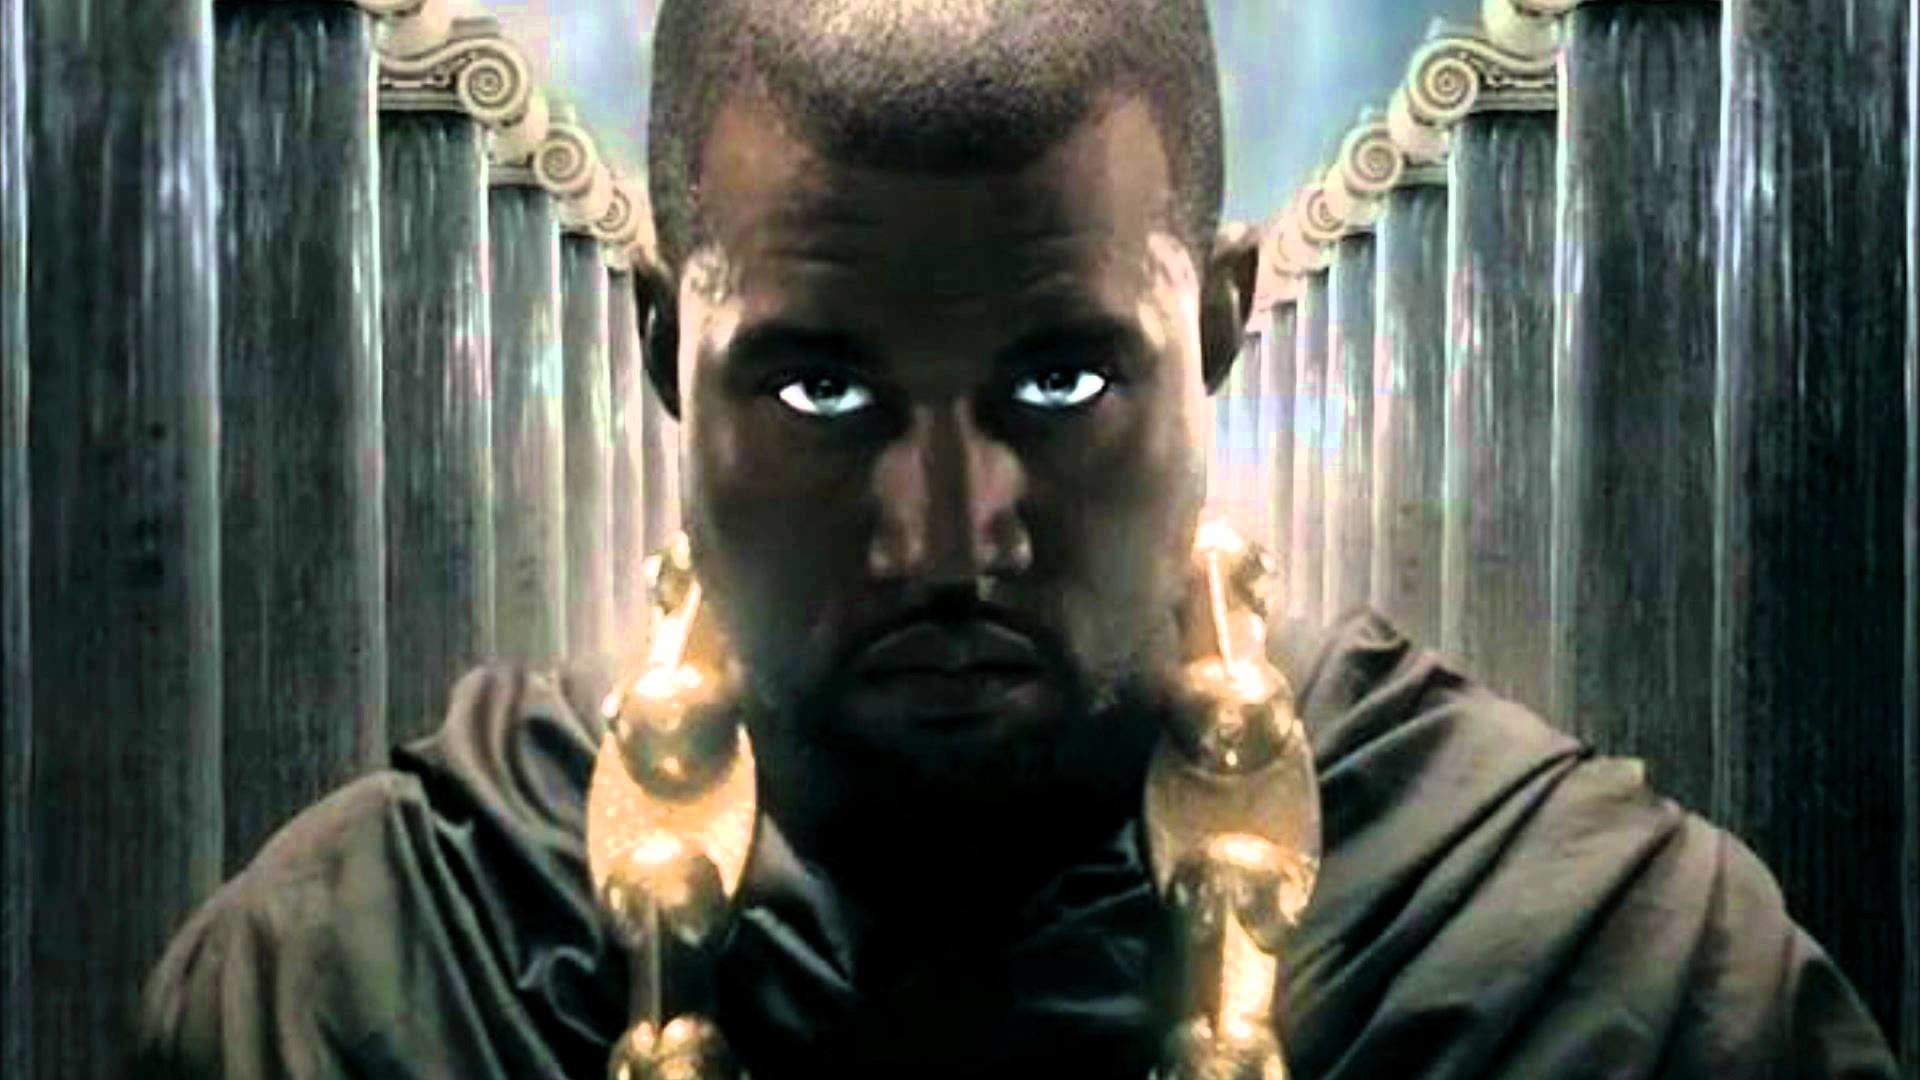 THE BEST SONGS OF THE DECADE Kanye West Power Wallpaper Hd